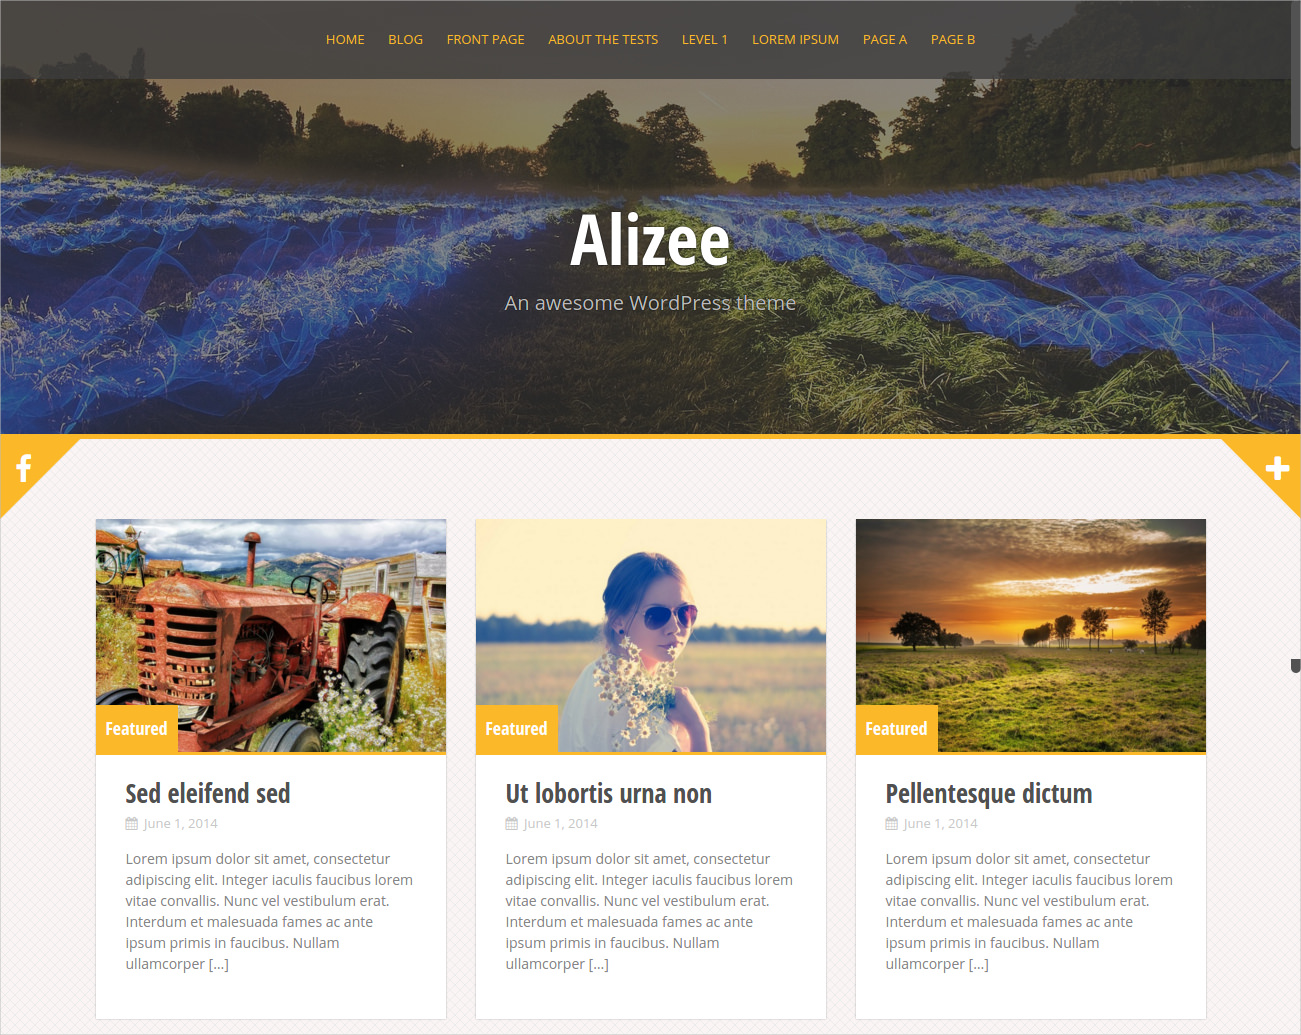 Grid-Based Theme with Fully Responsive